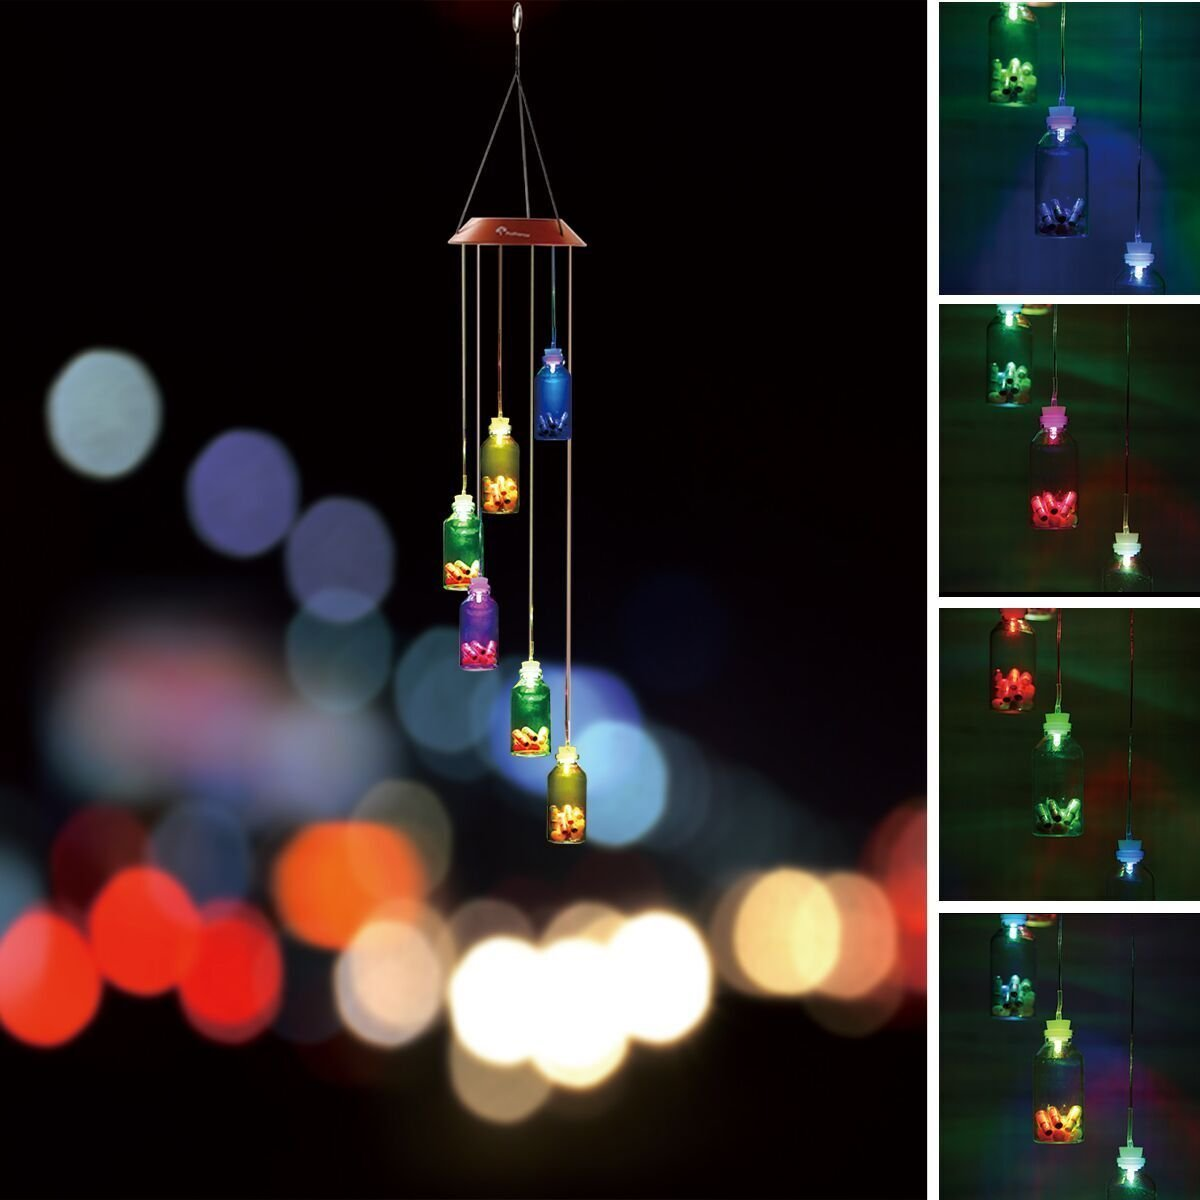 BALANSOHO Solar Mobile Wind Chimes 6 Wish Bottles Color-Changing Waterproof LED Hanging Lamp Night Lights for Outdoor Gardening Home Decoration